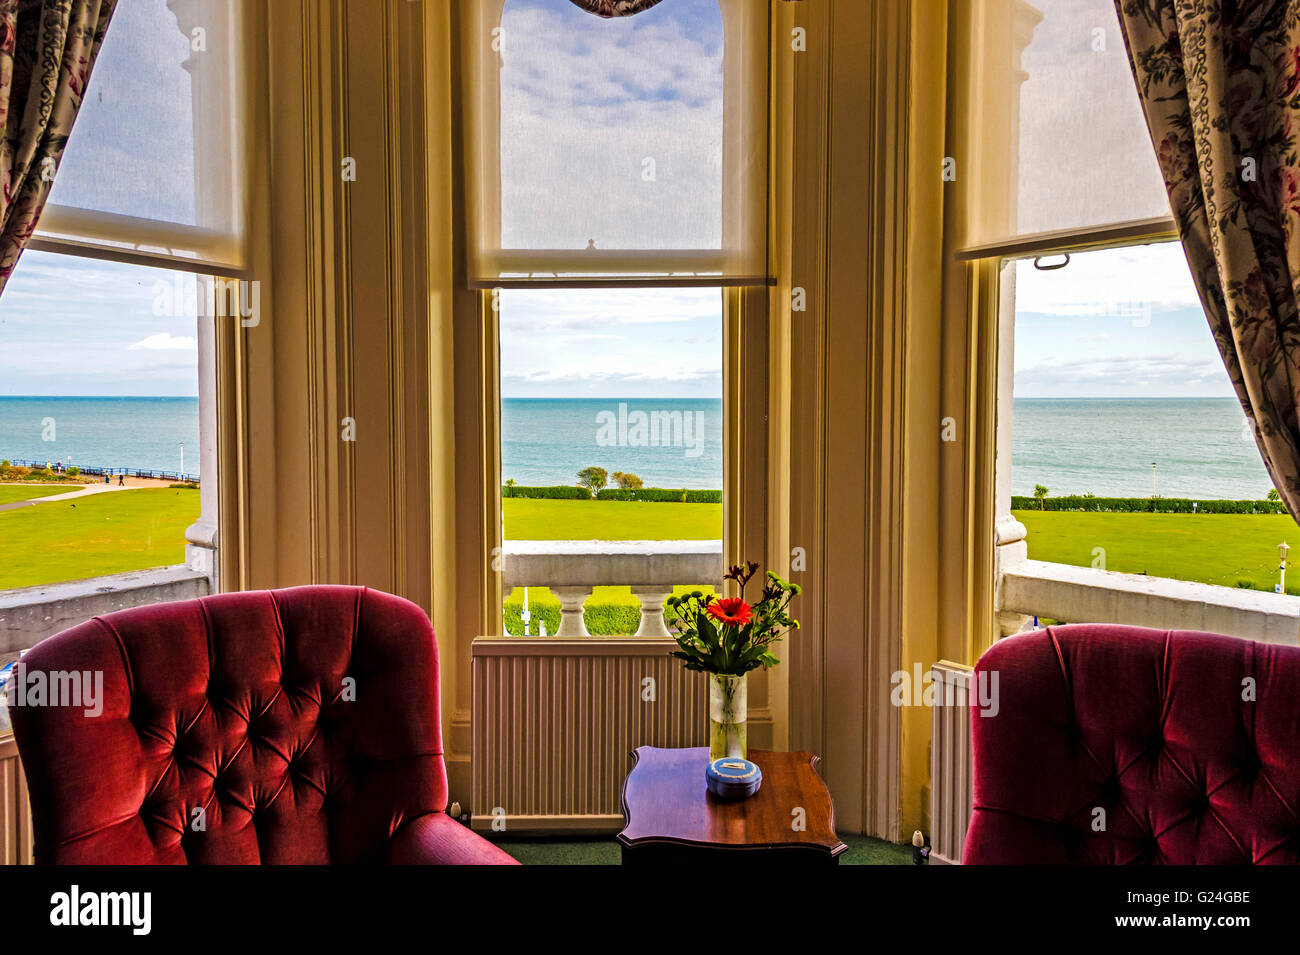 View onto the sea from the Grandhotel Eastbourne, room with a view; Blick aufs Meer vom Grandhotel Eastbourne - Stock Image